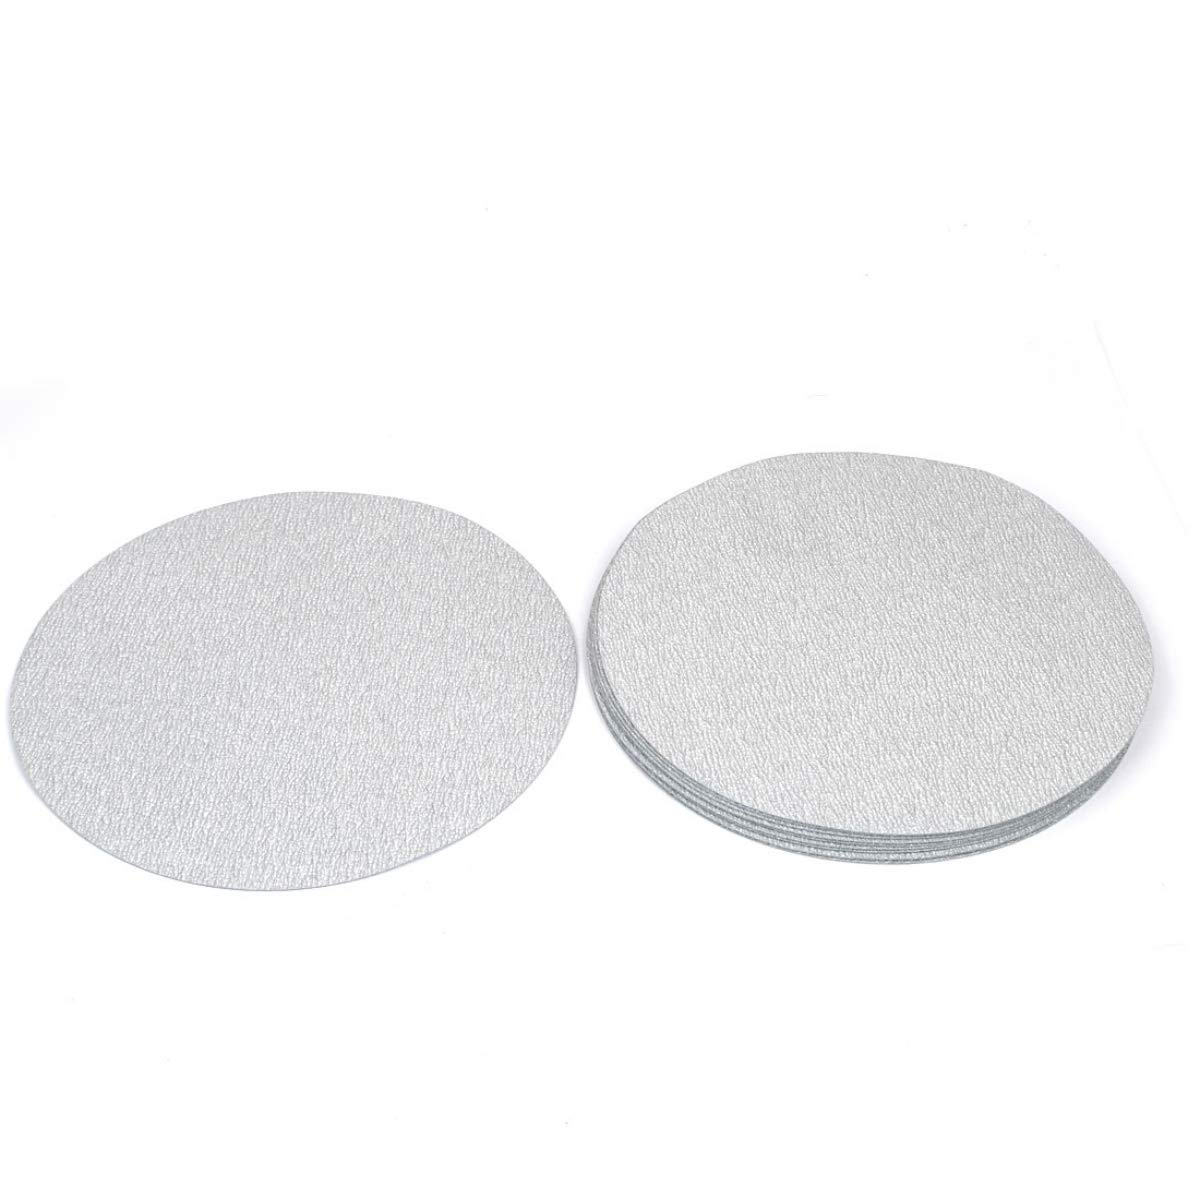 5 Inches Sandpaper Disc 800 Grit Hook and Loop Wet and Dry Waterproof Abrasive Sanding Paper PSA NO Hole 10 pcs CAZURE